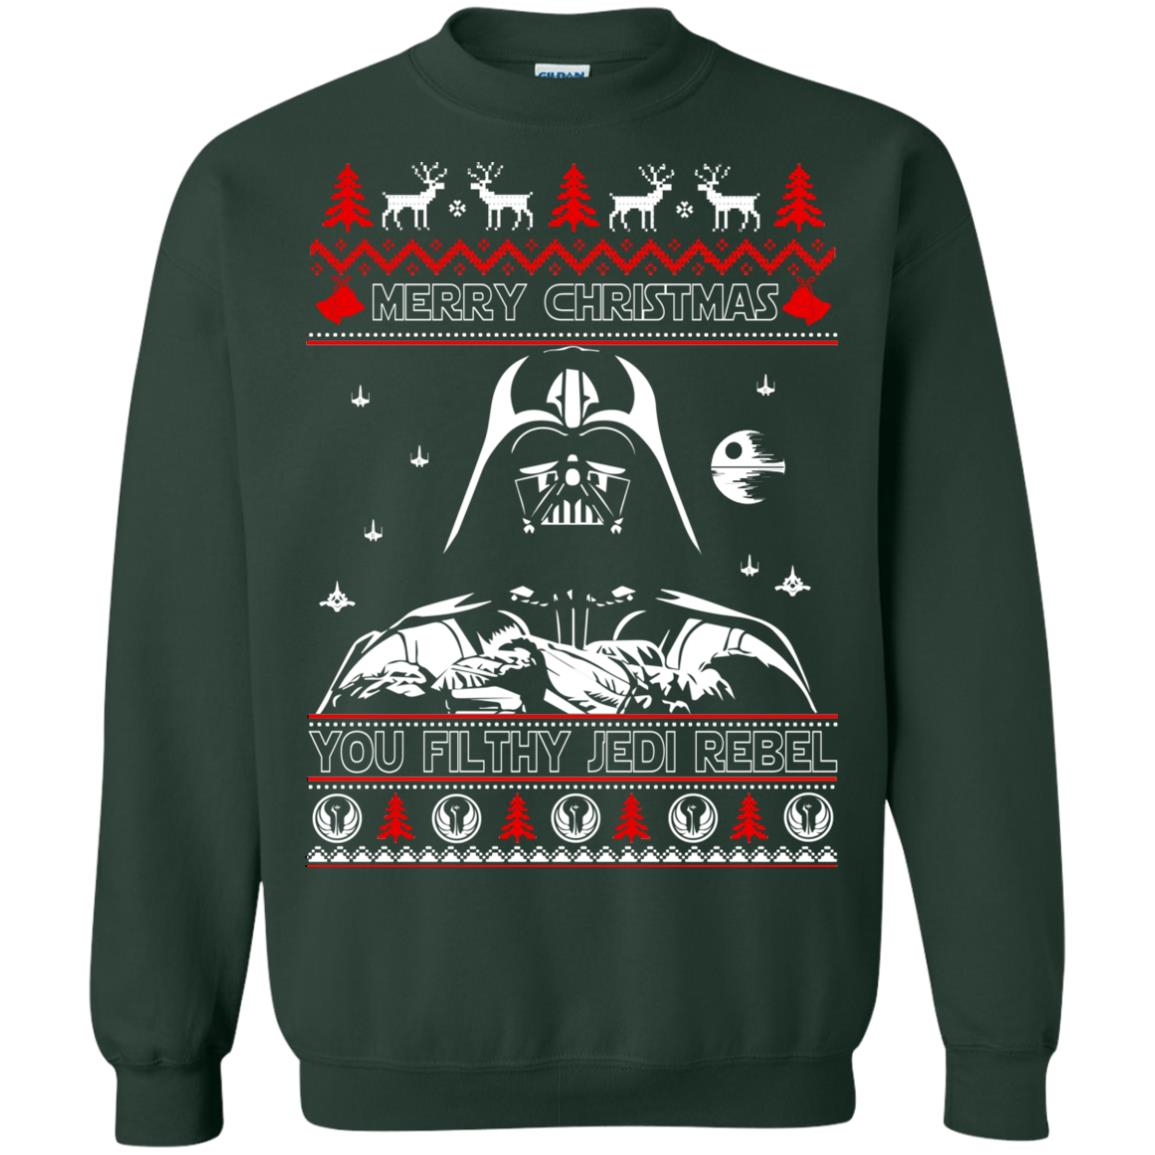 image 1791 - Darth Vader Merry Christmas You Filthy Jedi Rebel Ugly Sweater, Shirt